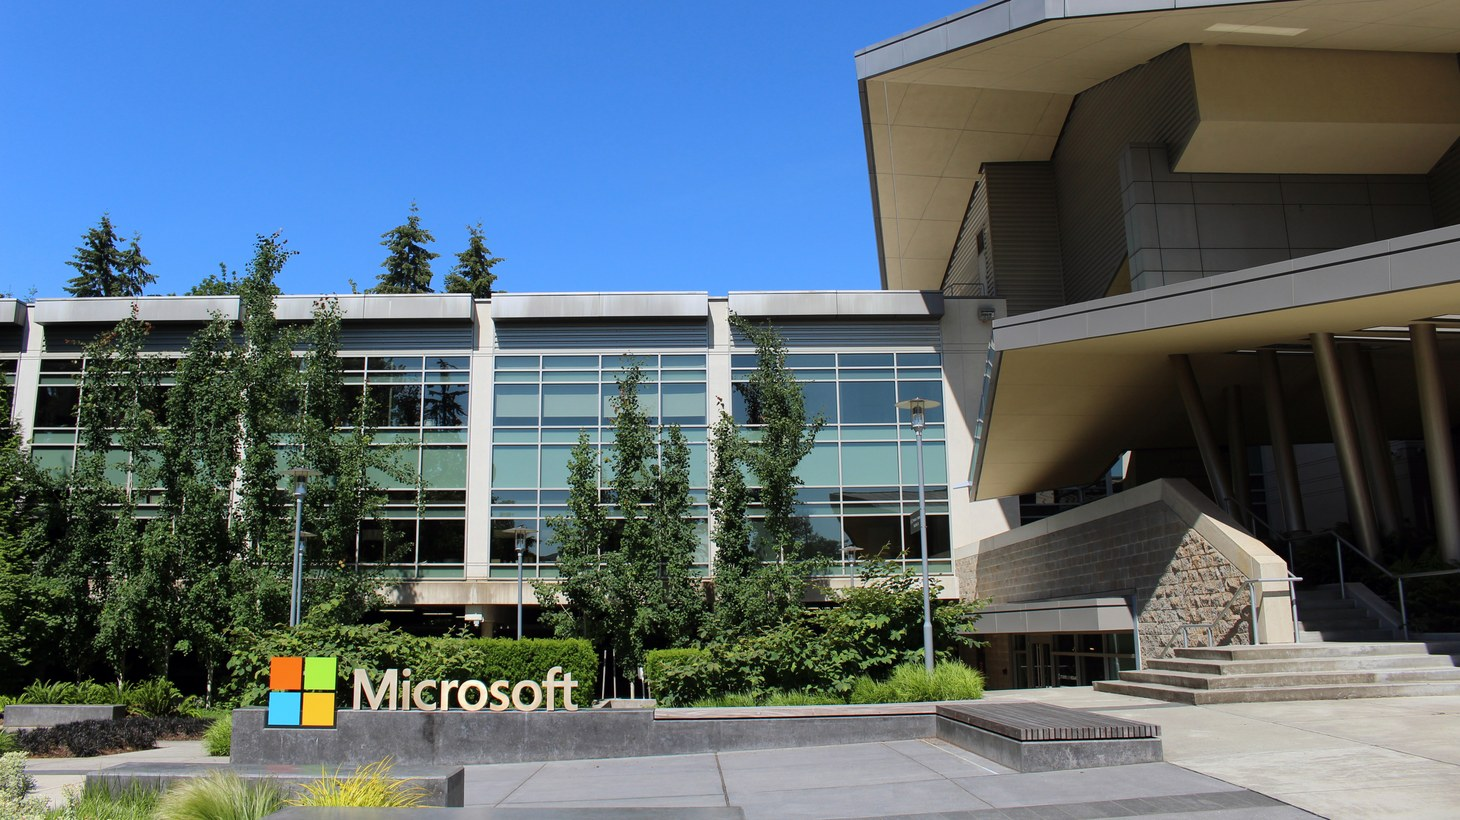 Building 92 at Microsoft Corporation headquarters in Redmond, Washington, 2016.